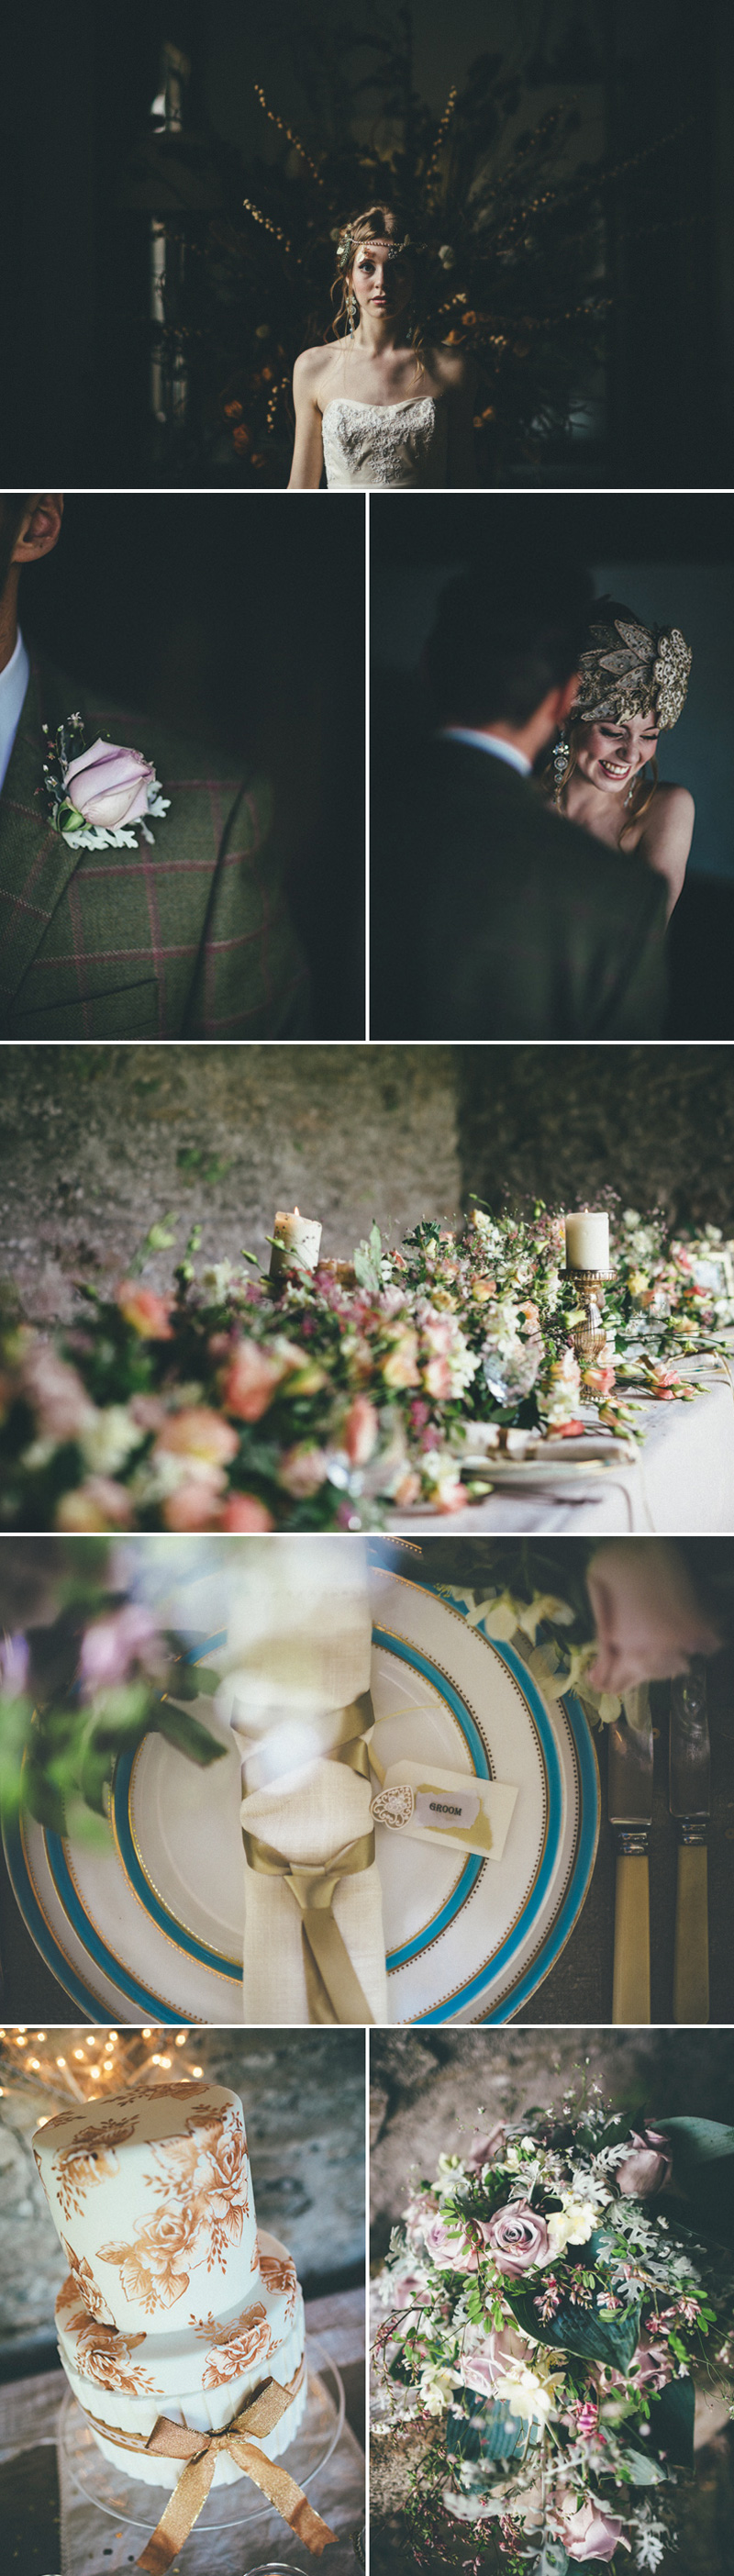 rustic-elegance-bridal-styled-shoot-at-pentillie-castle-styled-by-blue-fizz-ben-selway-photography-coco-wedding-venues-layer1a